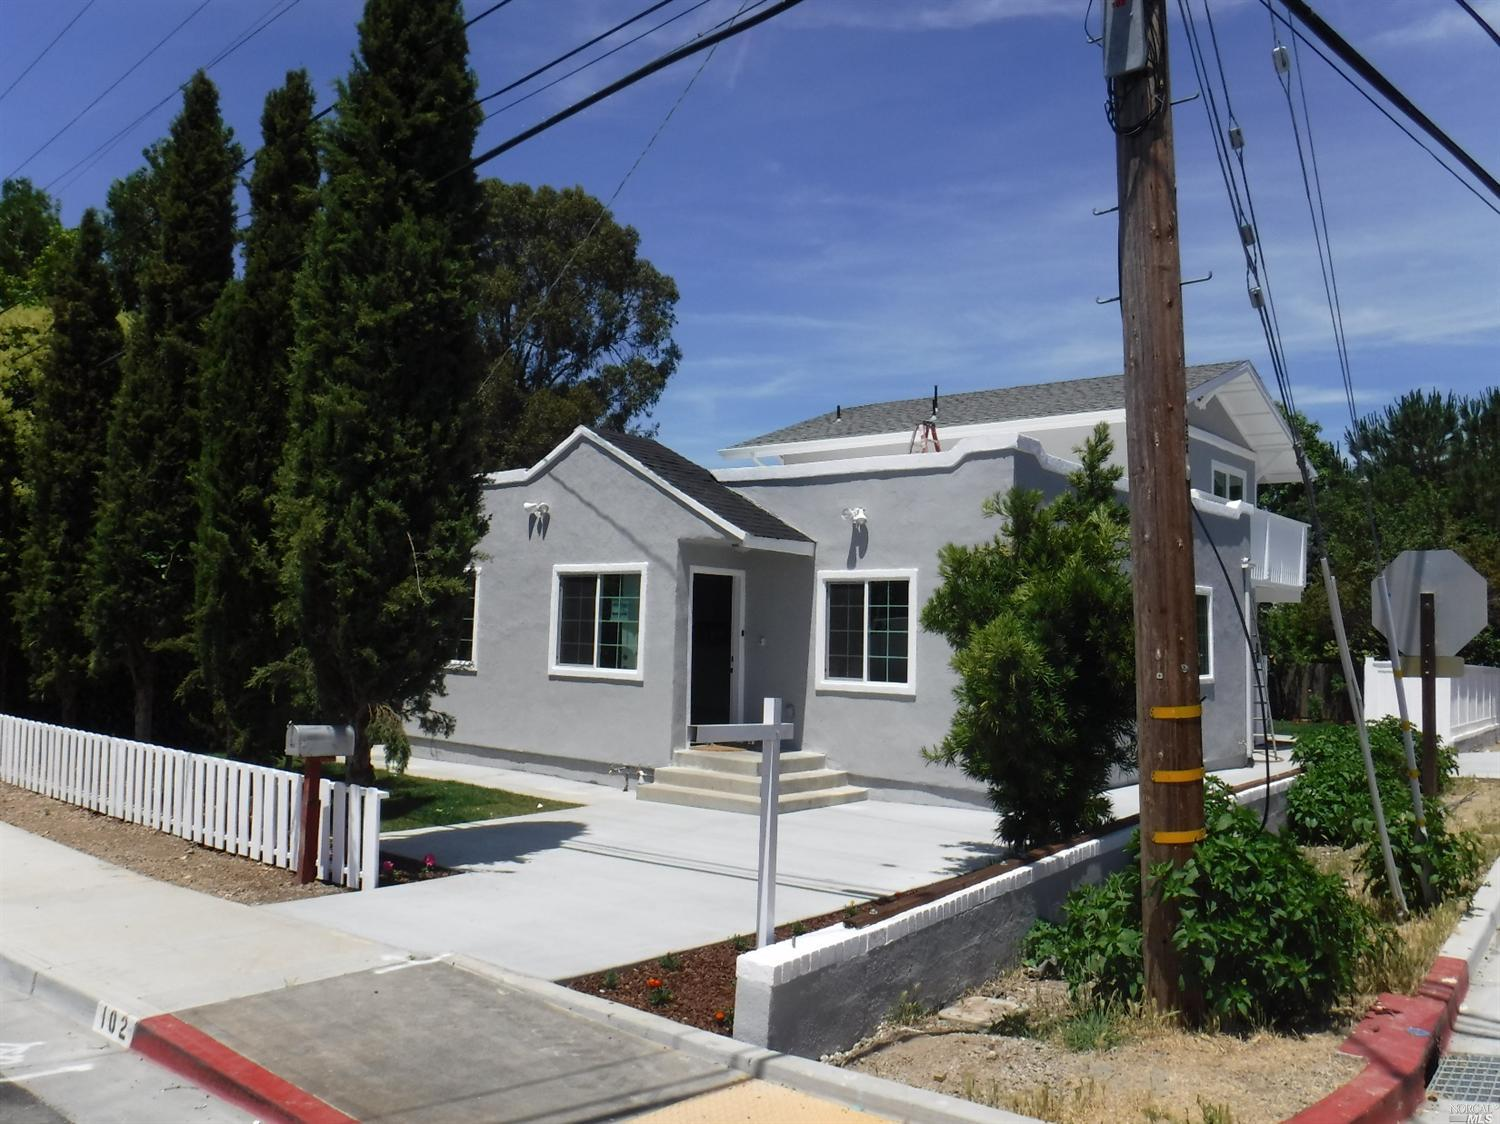 102 Mabry way San Rafael, CA 94903 - MLS #: 21705325